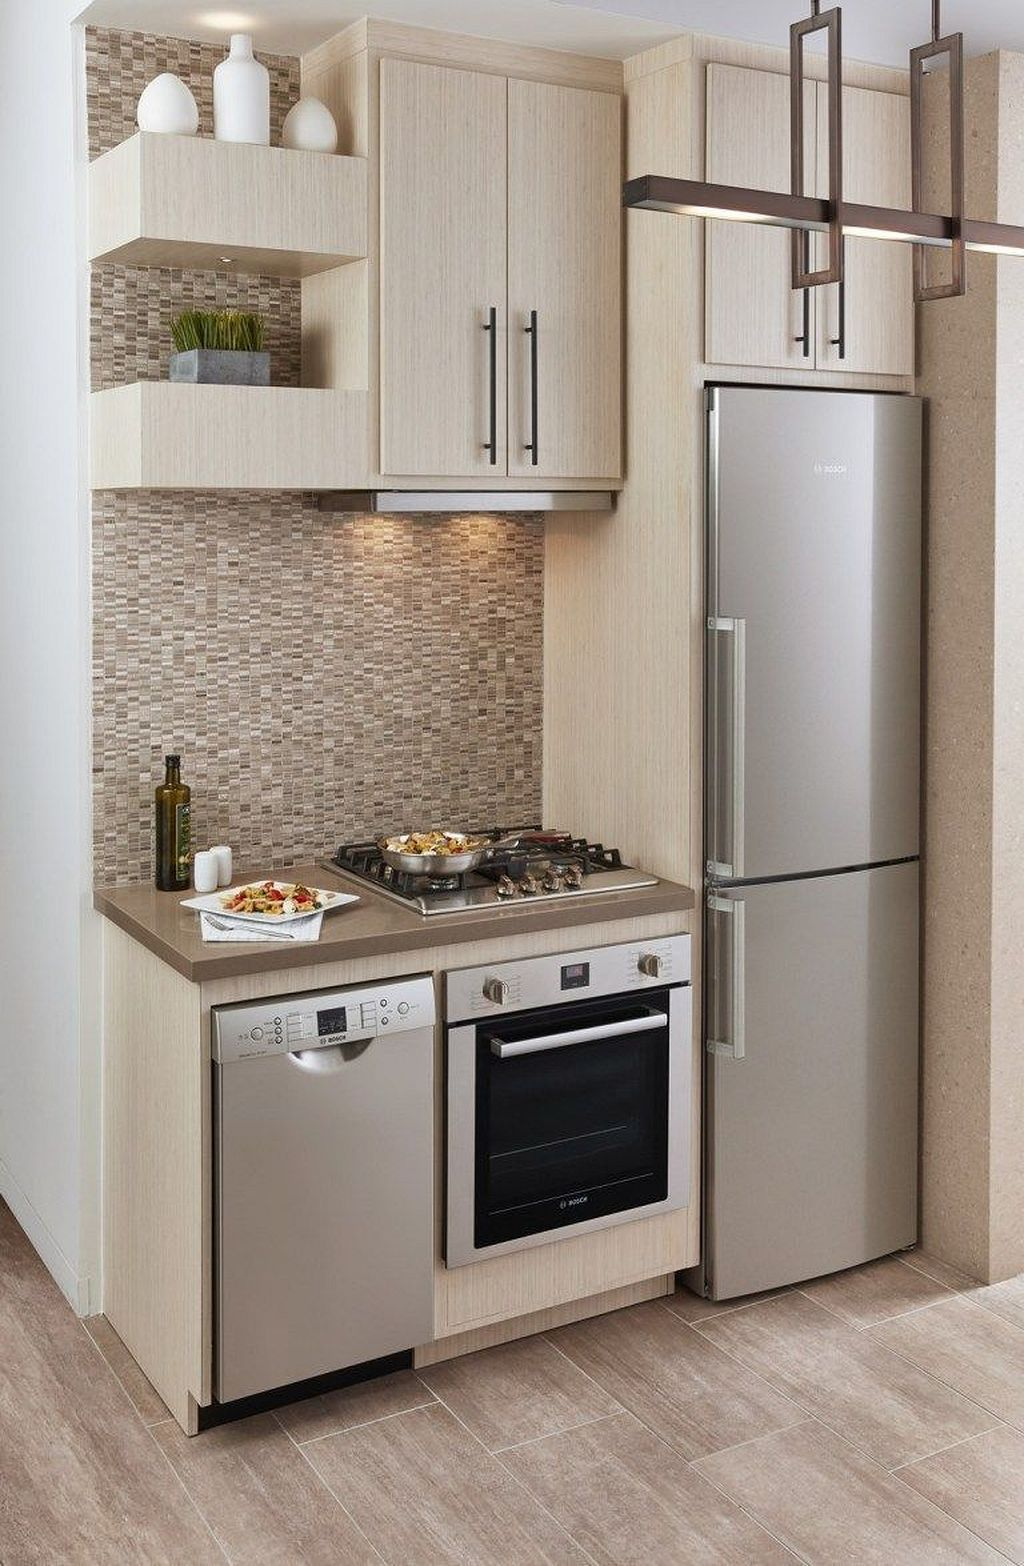 Inspiration For Your Own Tiny House With Small Kitchen Space9 ...